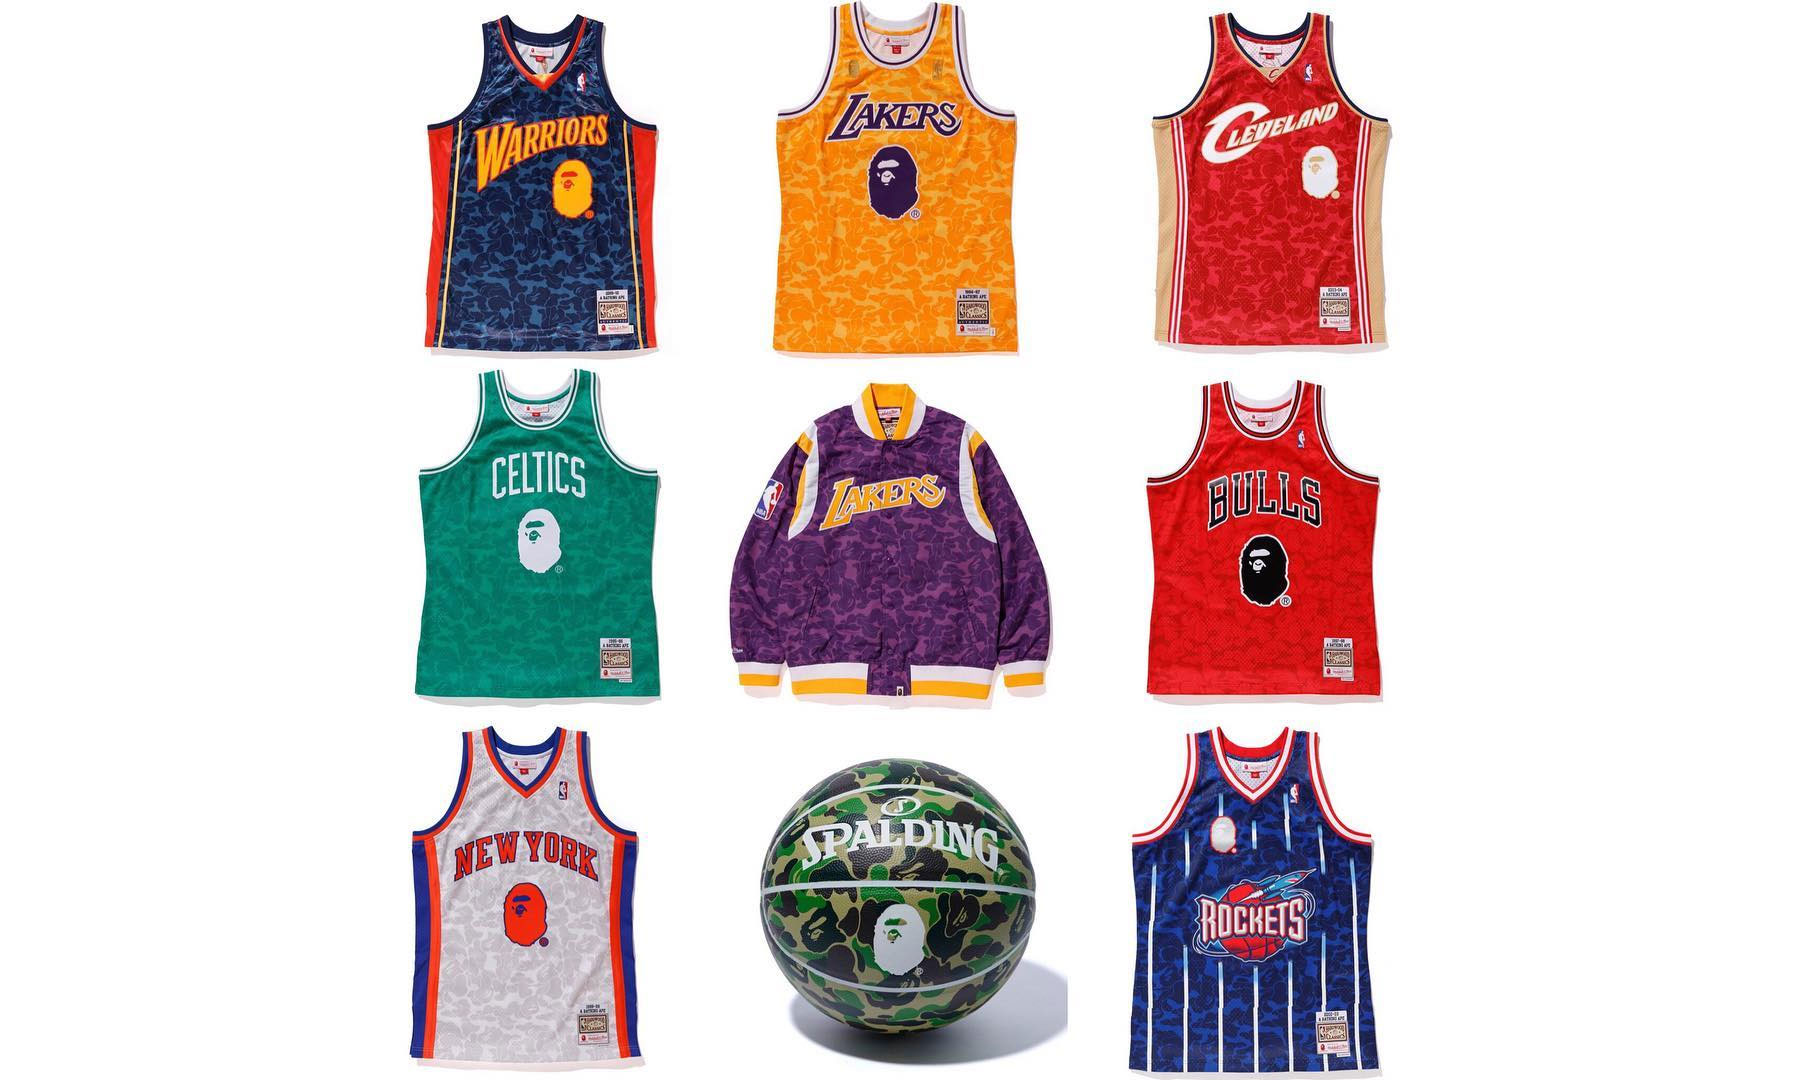 6b7fd0b77ff A BATHING APE® x Mitchell & Ness 联名发售全览– NOWRE现客